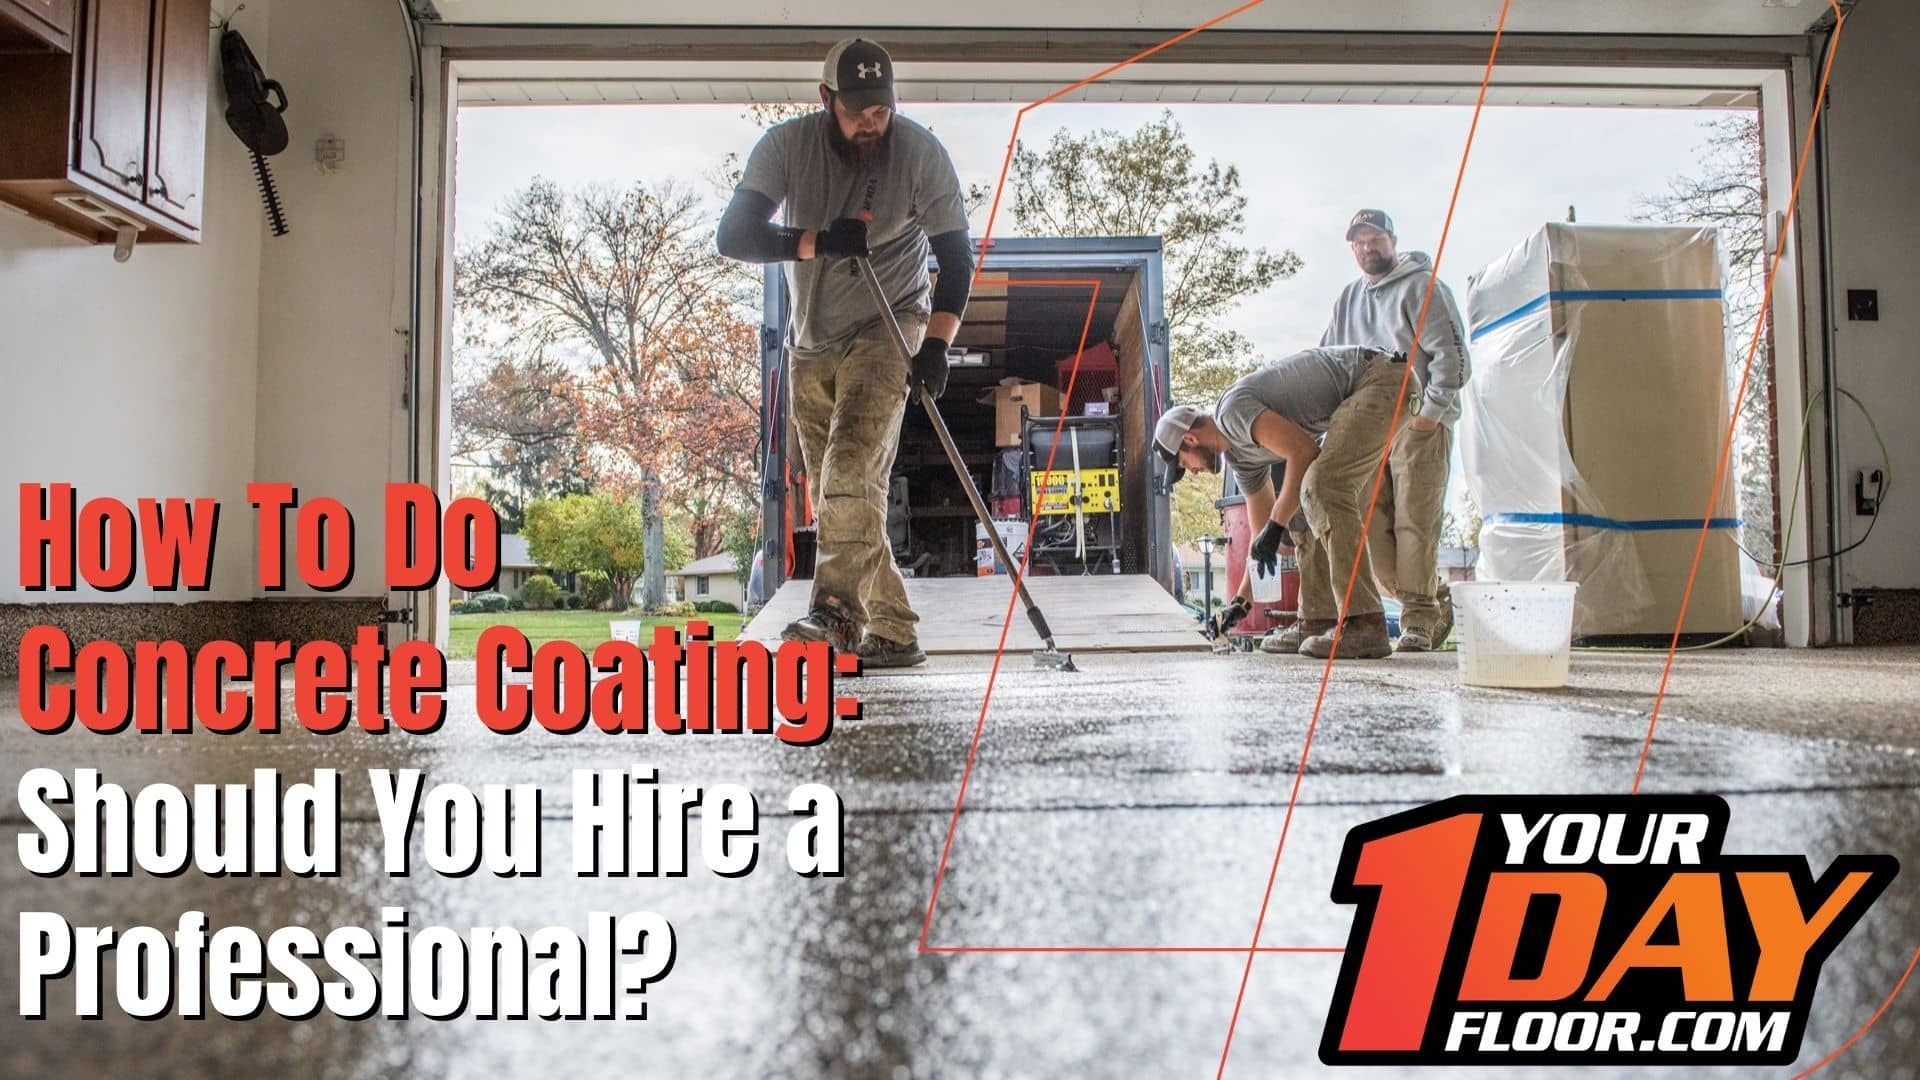 how to do concrete coating